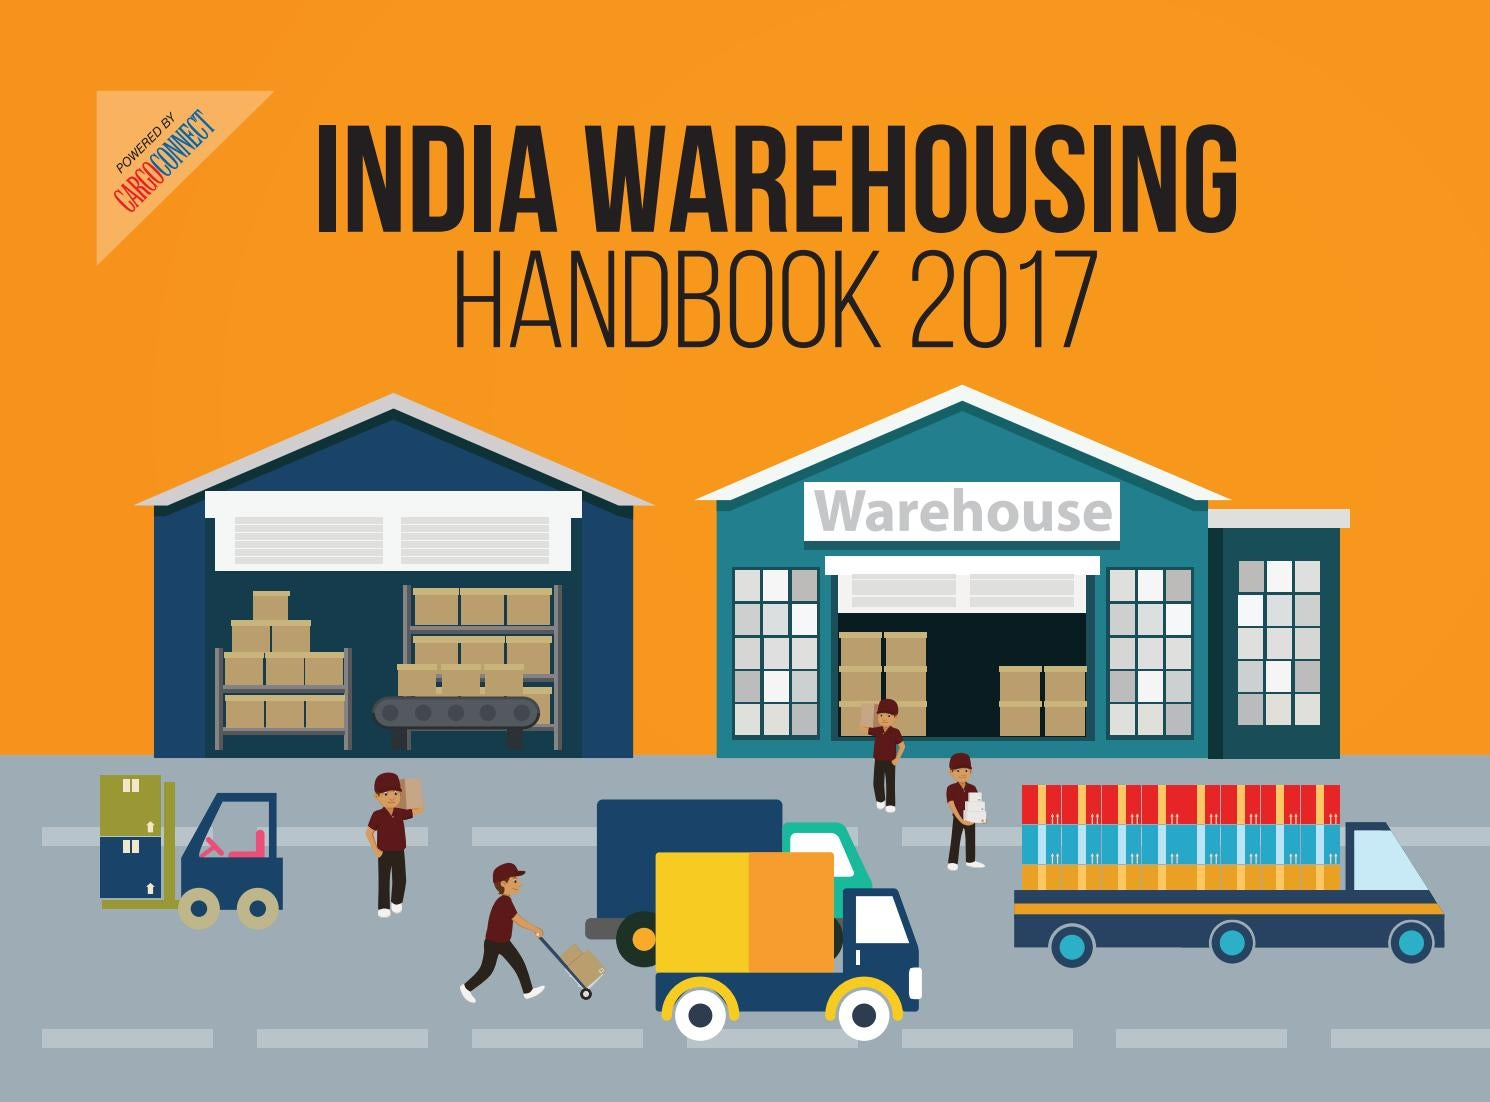 INDIA WAREHOUSING HANDBOOK 2017 powered by CargoConnect by